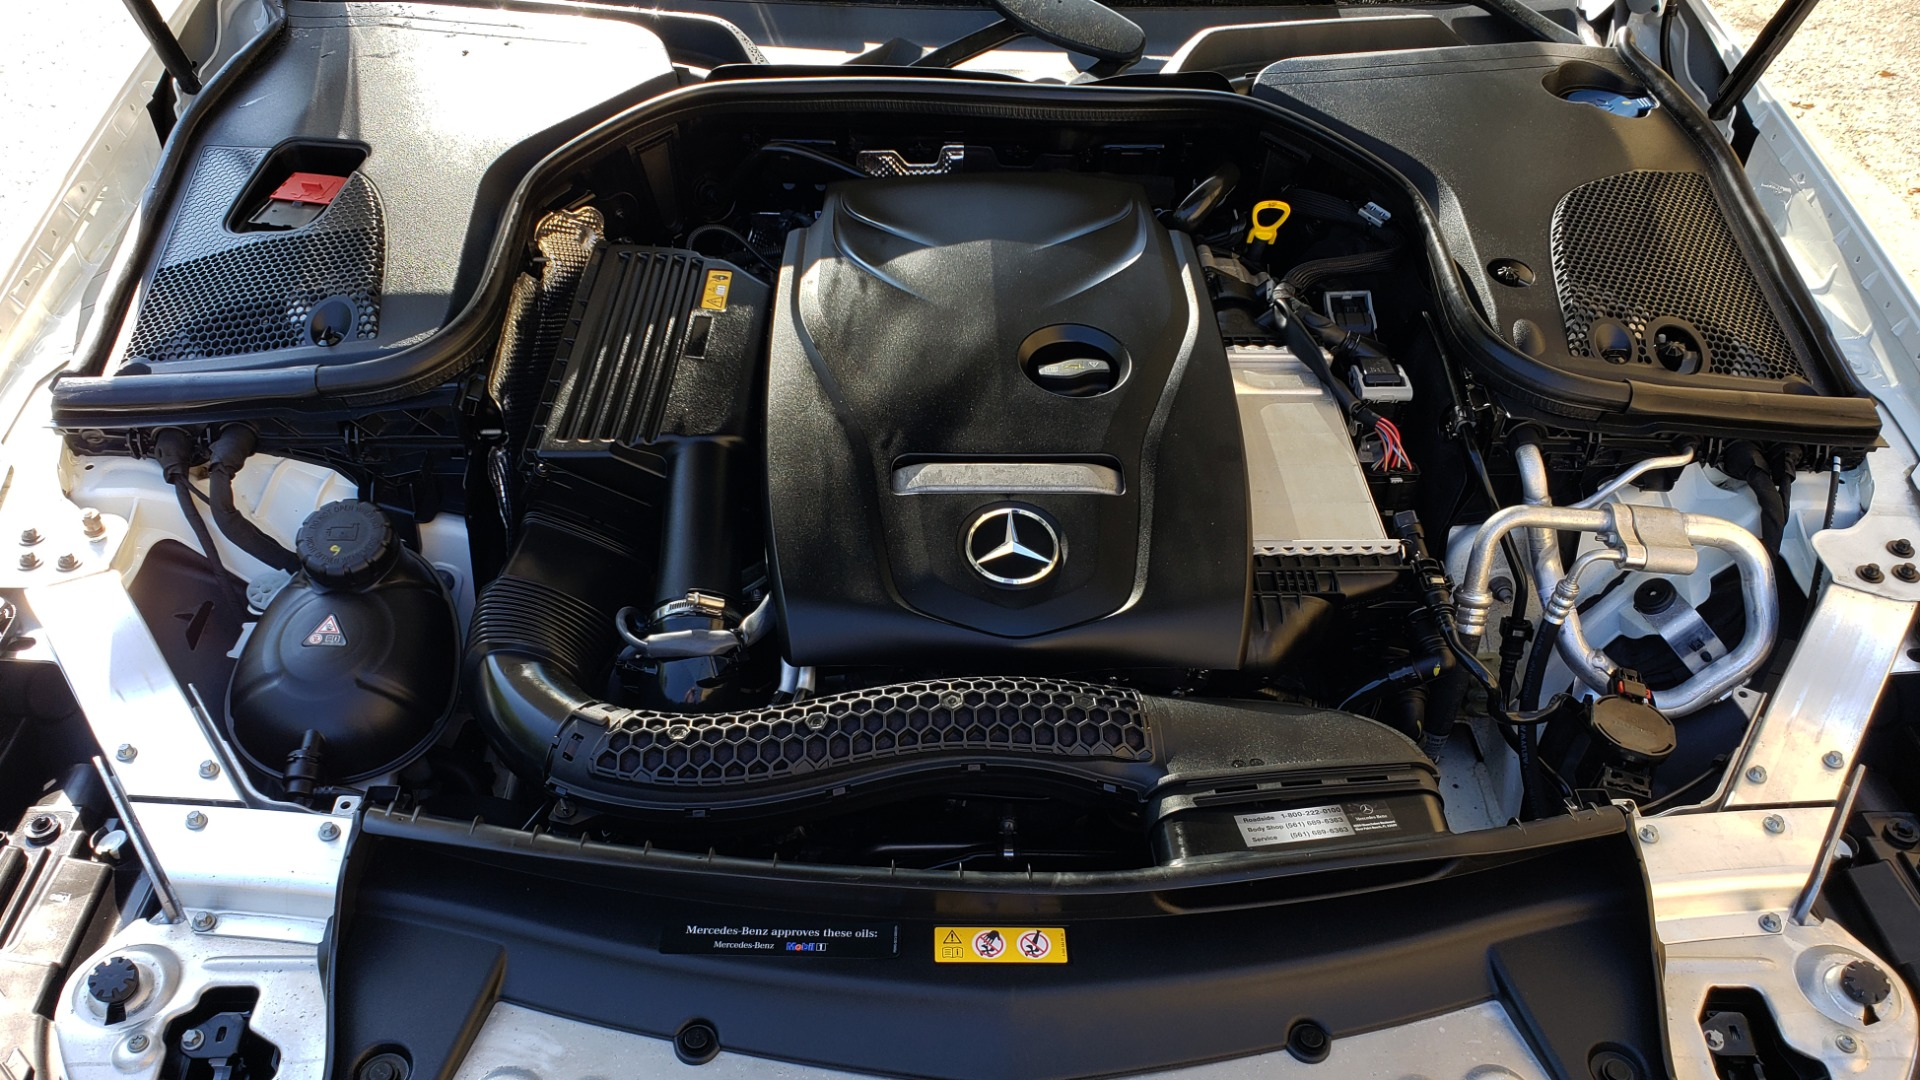 Used 2017 Mercedes-Benz E-Class E 300 PREMIUM / RWD / NAV / SNF / PARKING PILOT / REARVIEW / BURMESTER for sale Sold at Formula Imports in Charlotte NC 28227 10